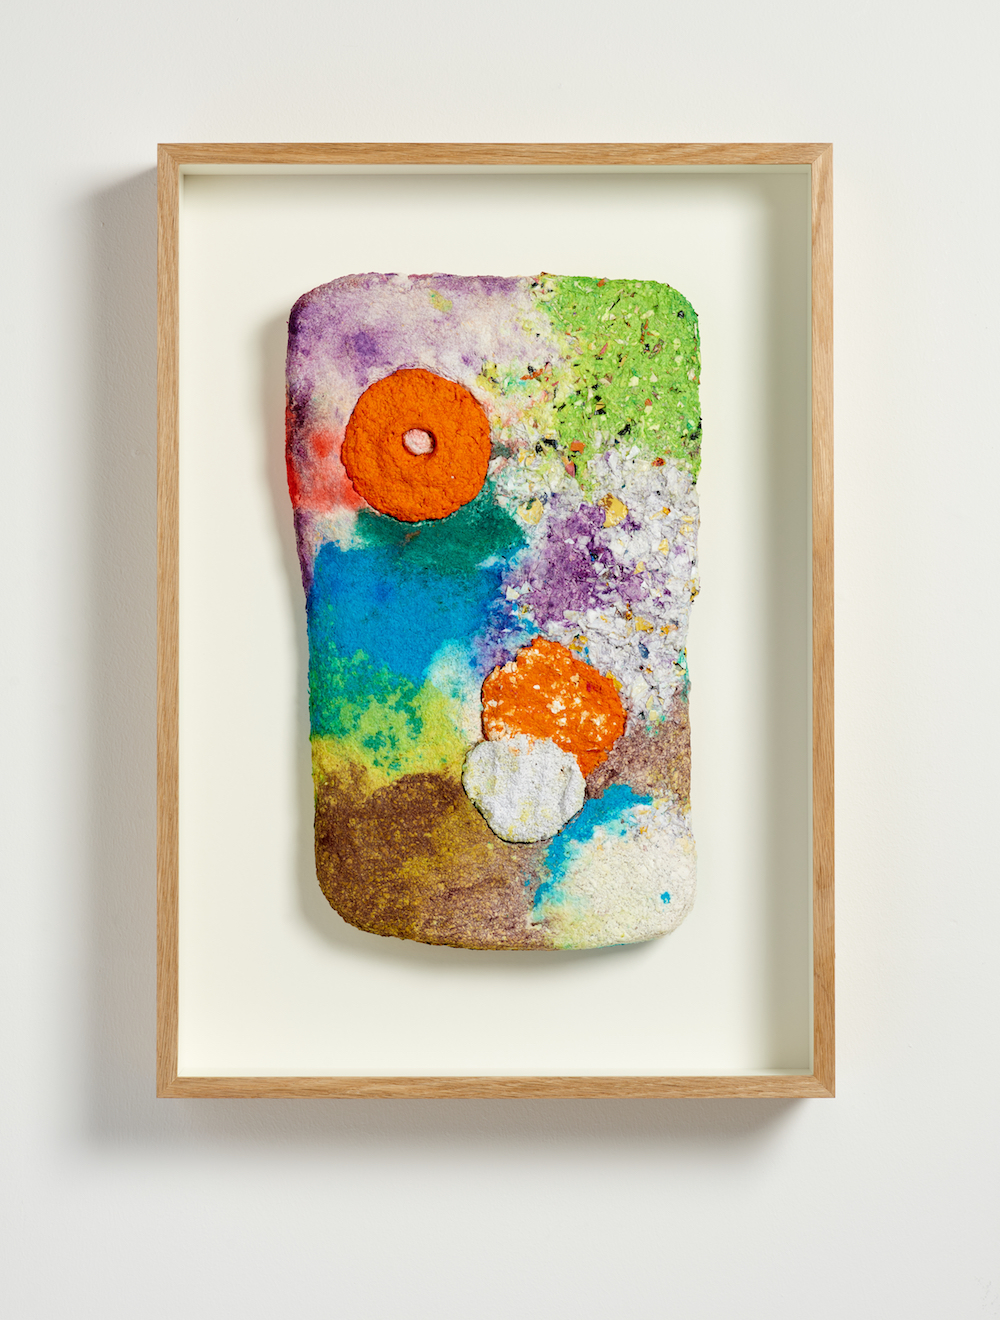 Ludovica Gioscia, Temporal Tablet 6, 2019. Paper mache made from mixed media* in oak frame. 65.5 x 46.5 x 9 cm. Photographer Jonathon Bassett.